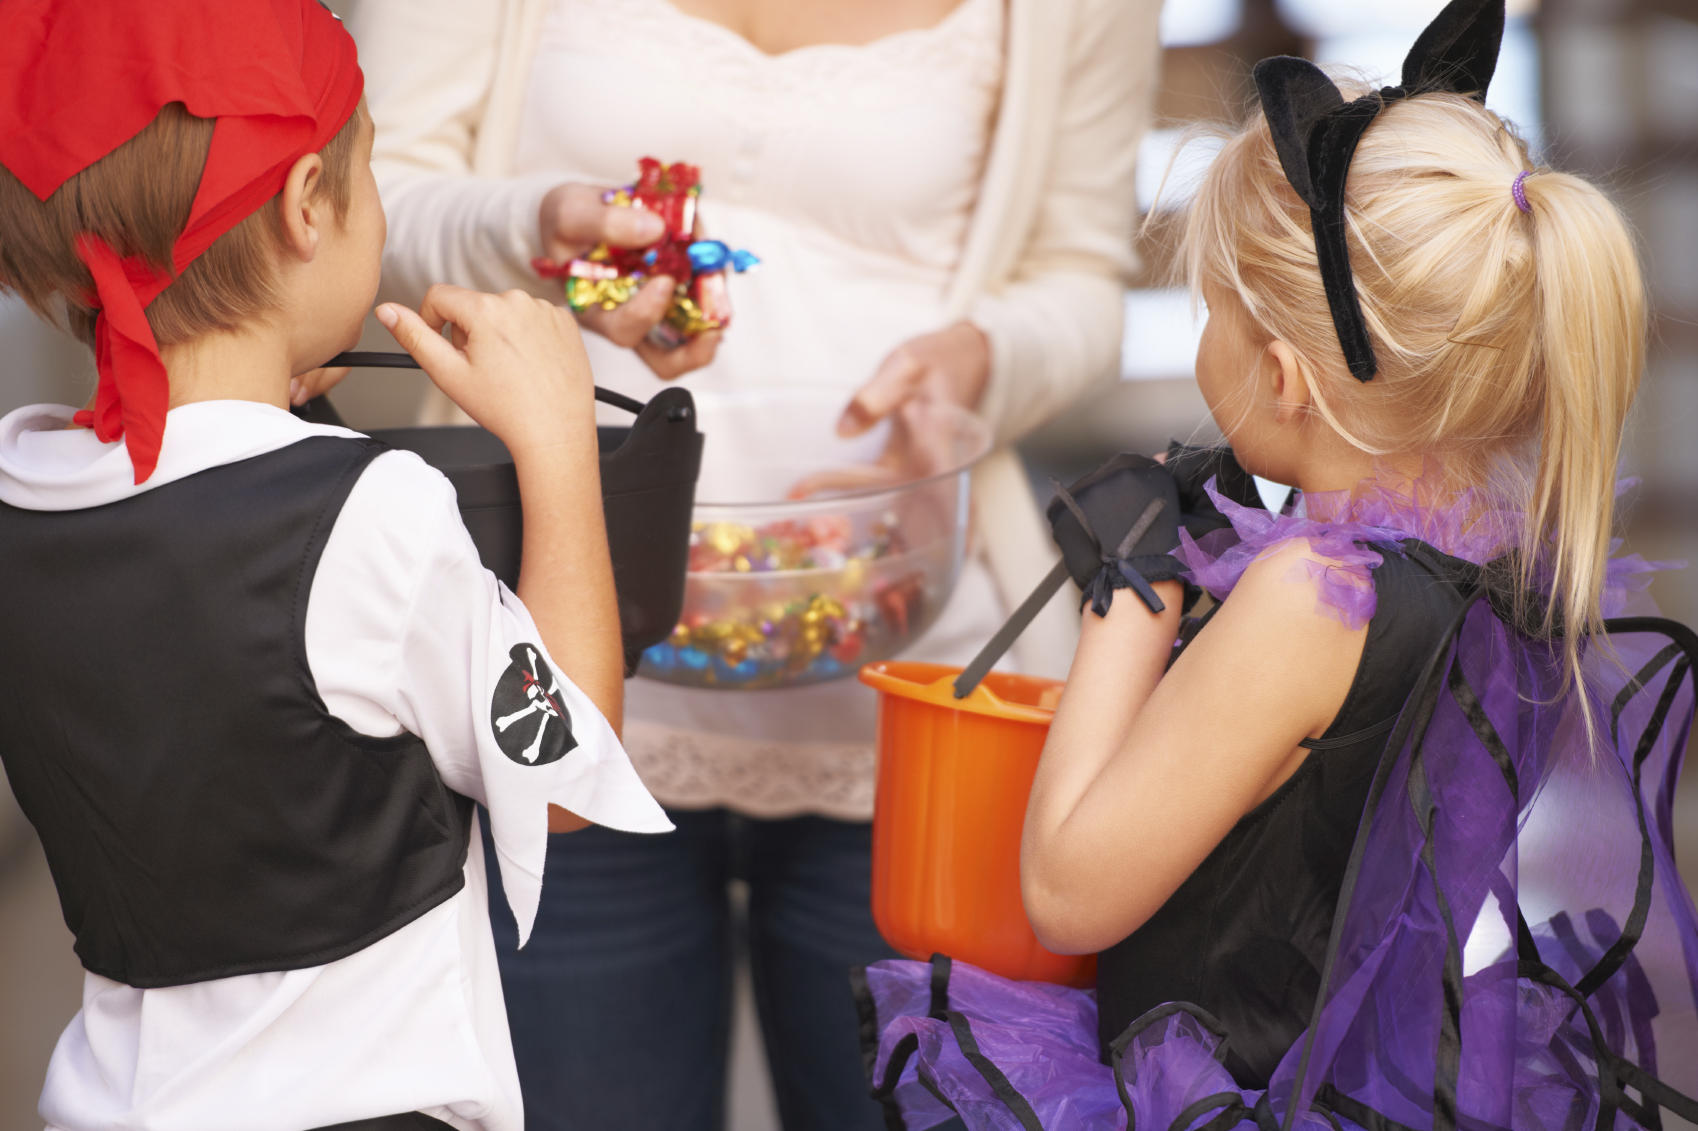 Trick or treat - childhood activities